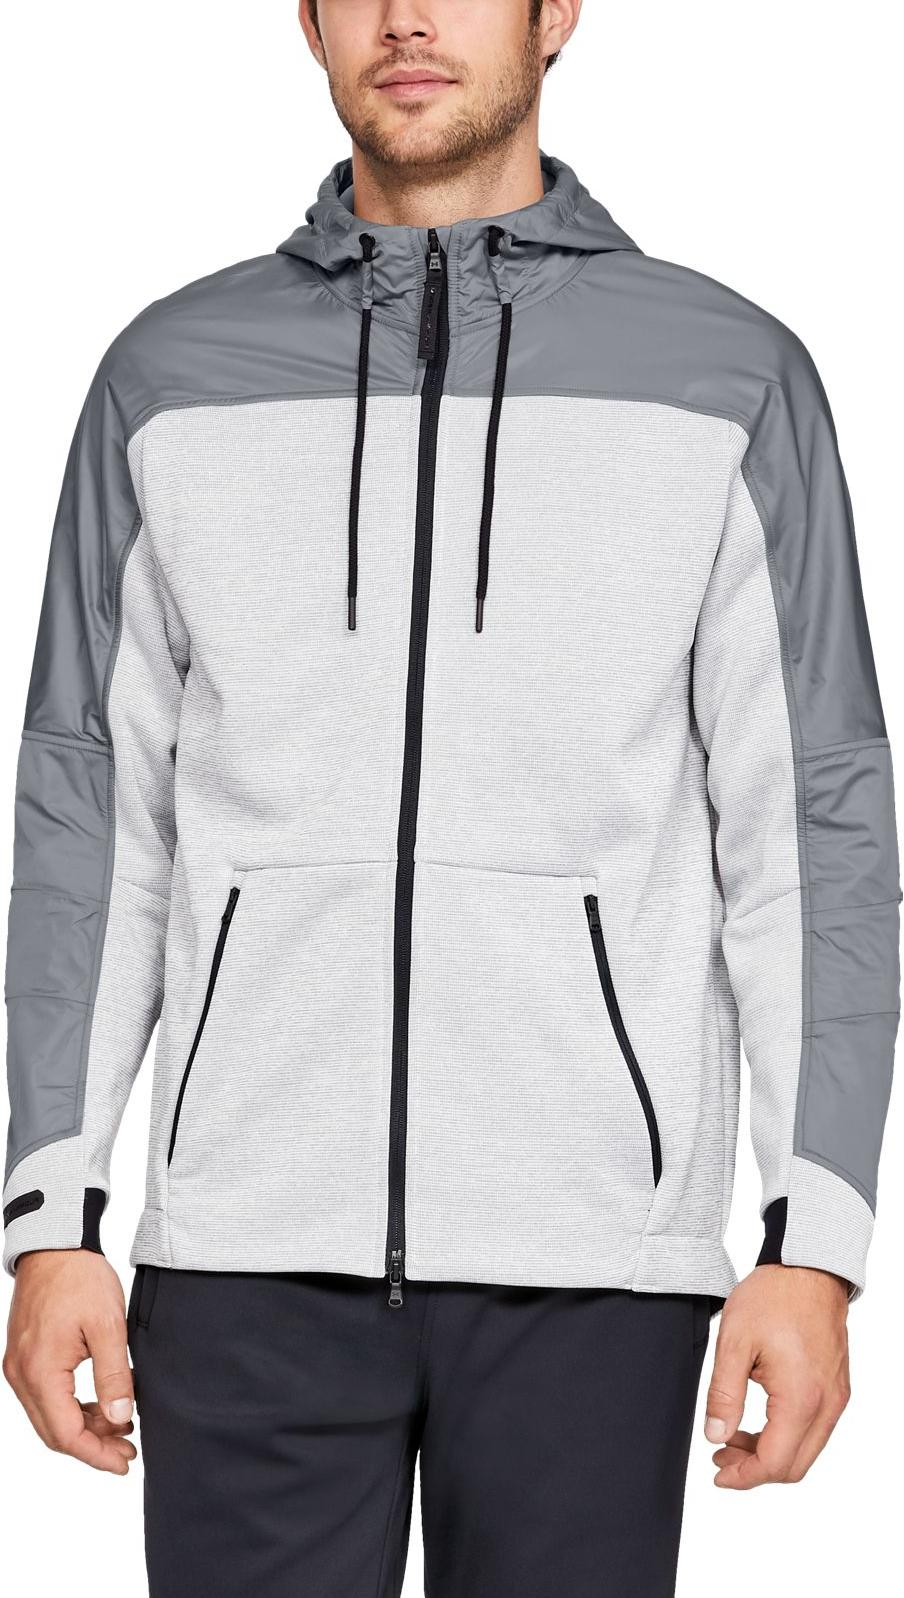 Bunda s kapucňou Under Armour UNSTOPPABLE COLDGEAR SWACKET